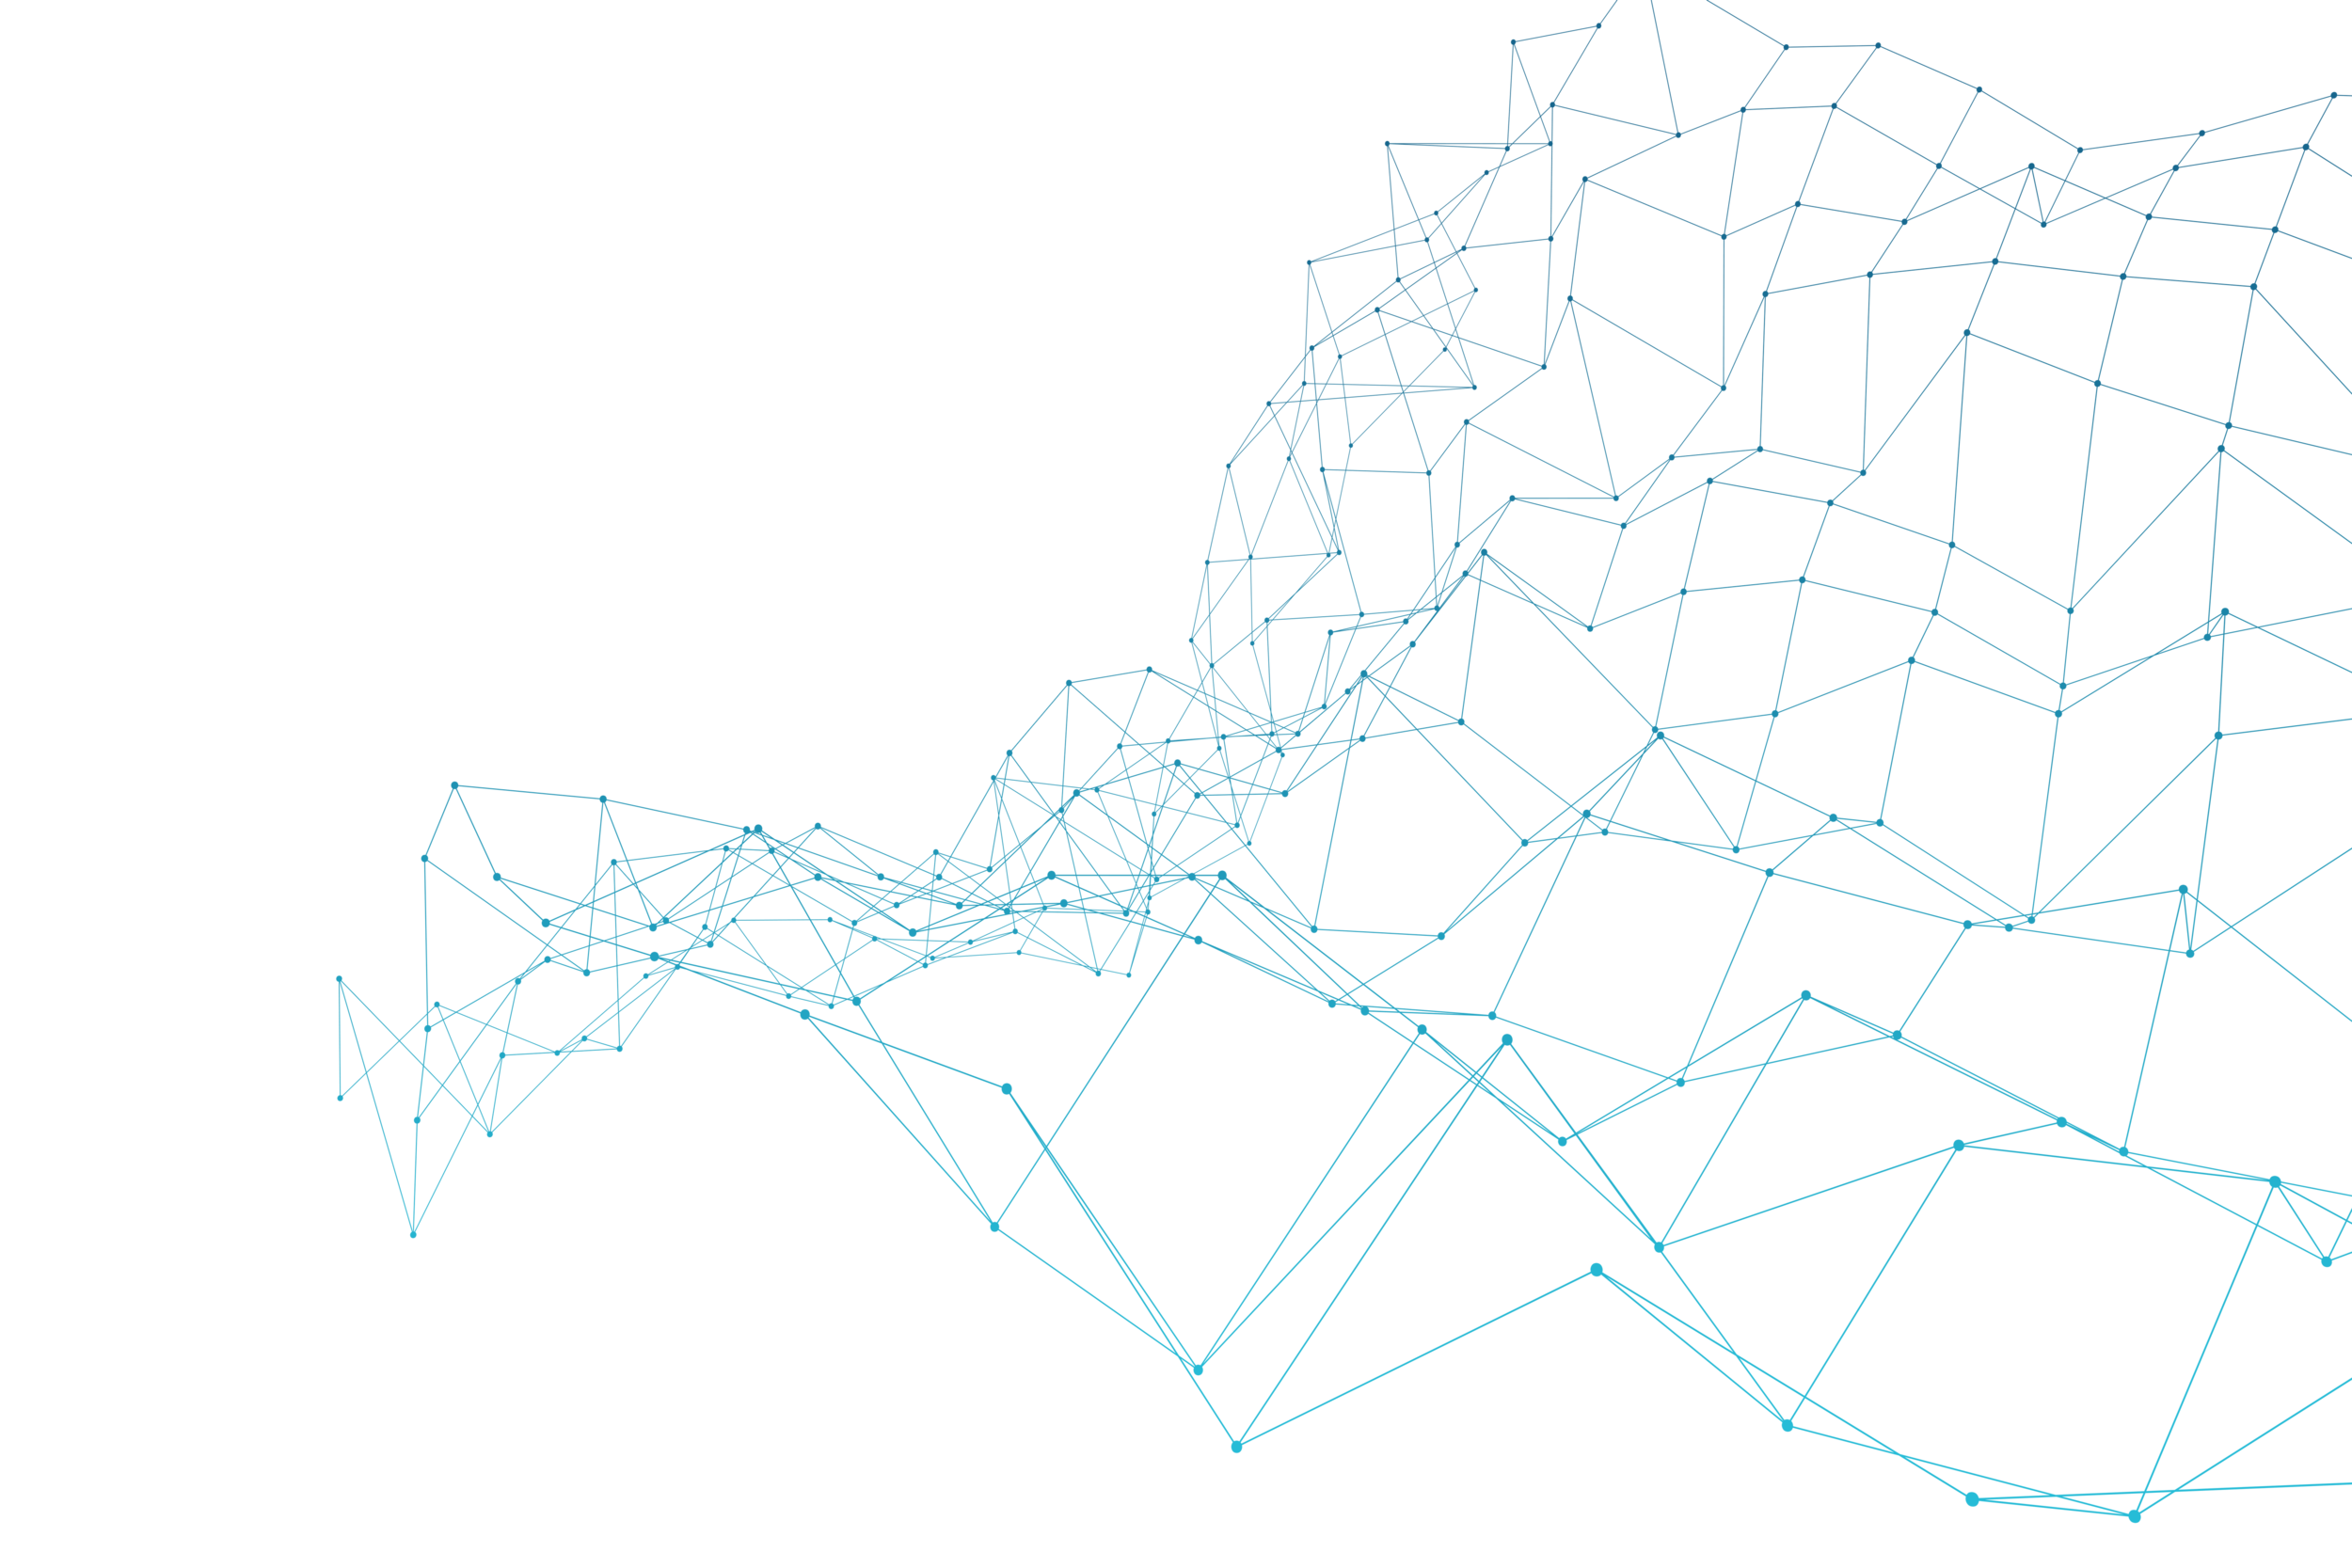 connected-dots.png